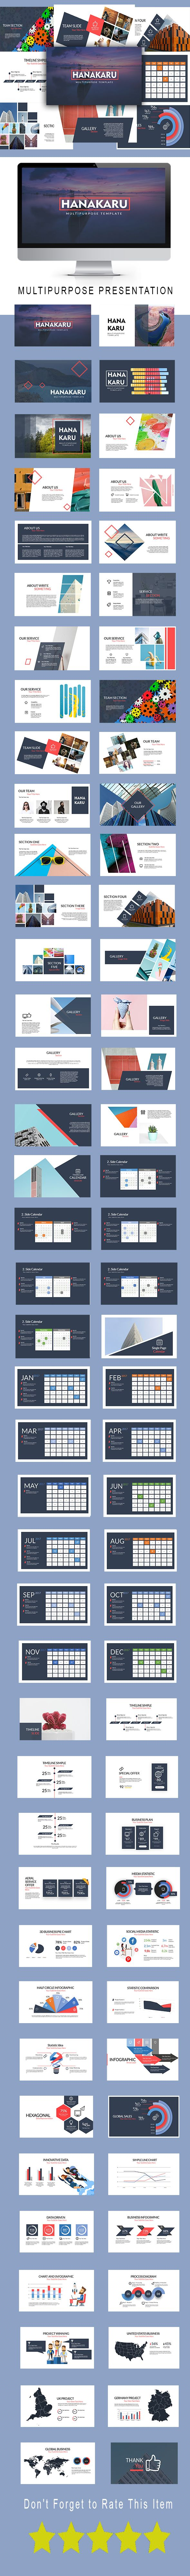 Hanakaru Multipurpose Powerpoint Template — Powerpoint PPT #benchmarking #keynote • Download ➝ https://graphicriver.net/item/hanakaru-multipurpose-powerpoint-template/19638524?ref=pxcr